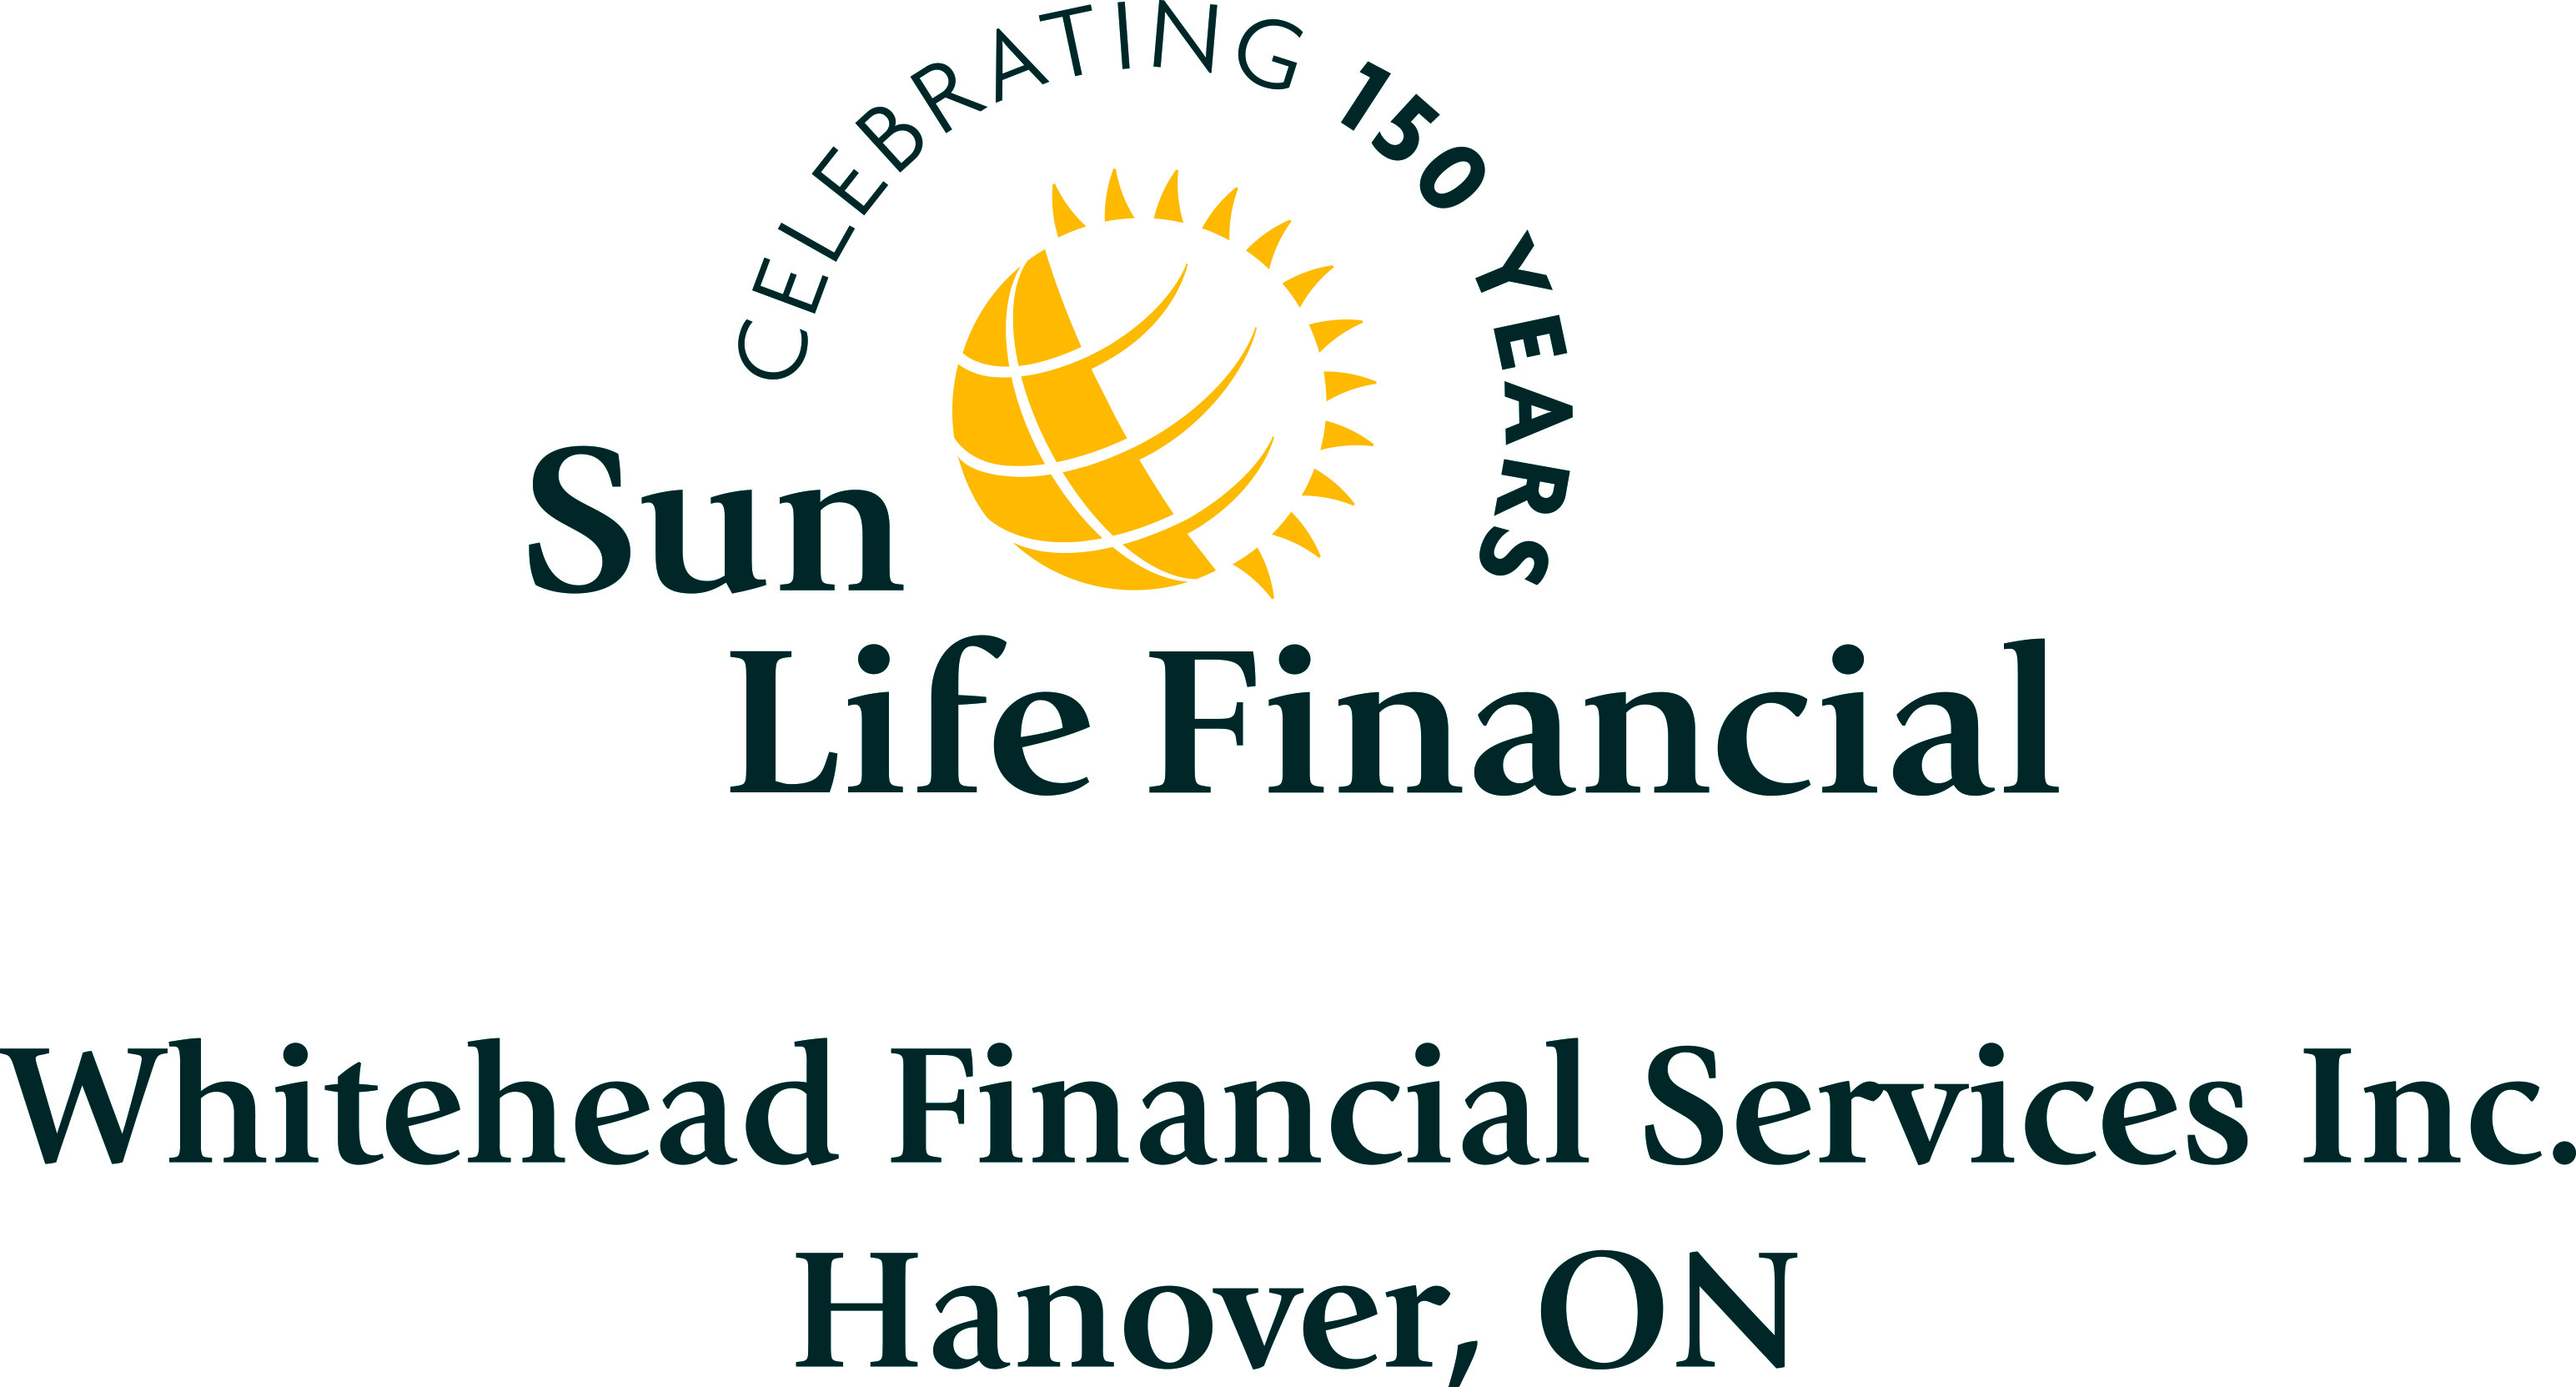 Sun Life Financial Whitehead Financial Services